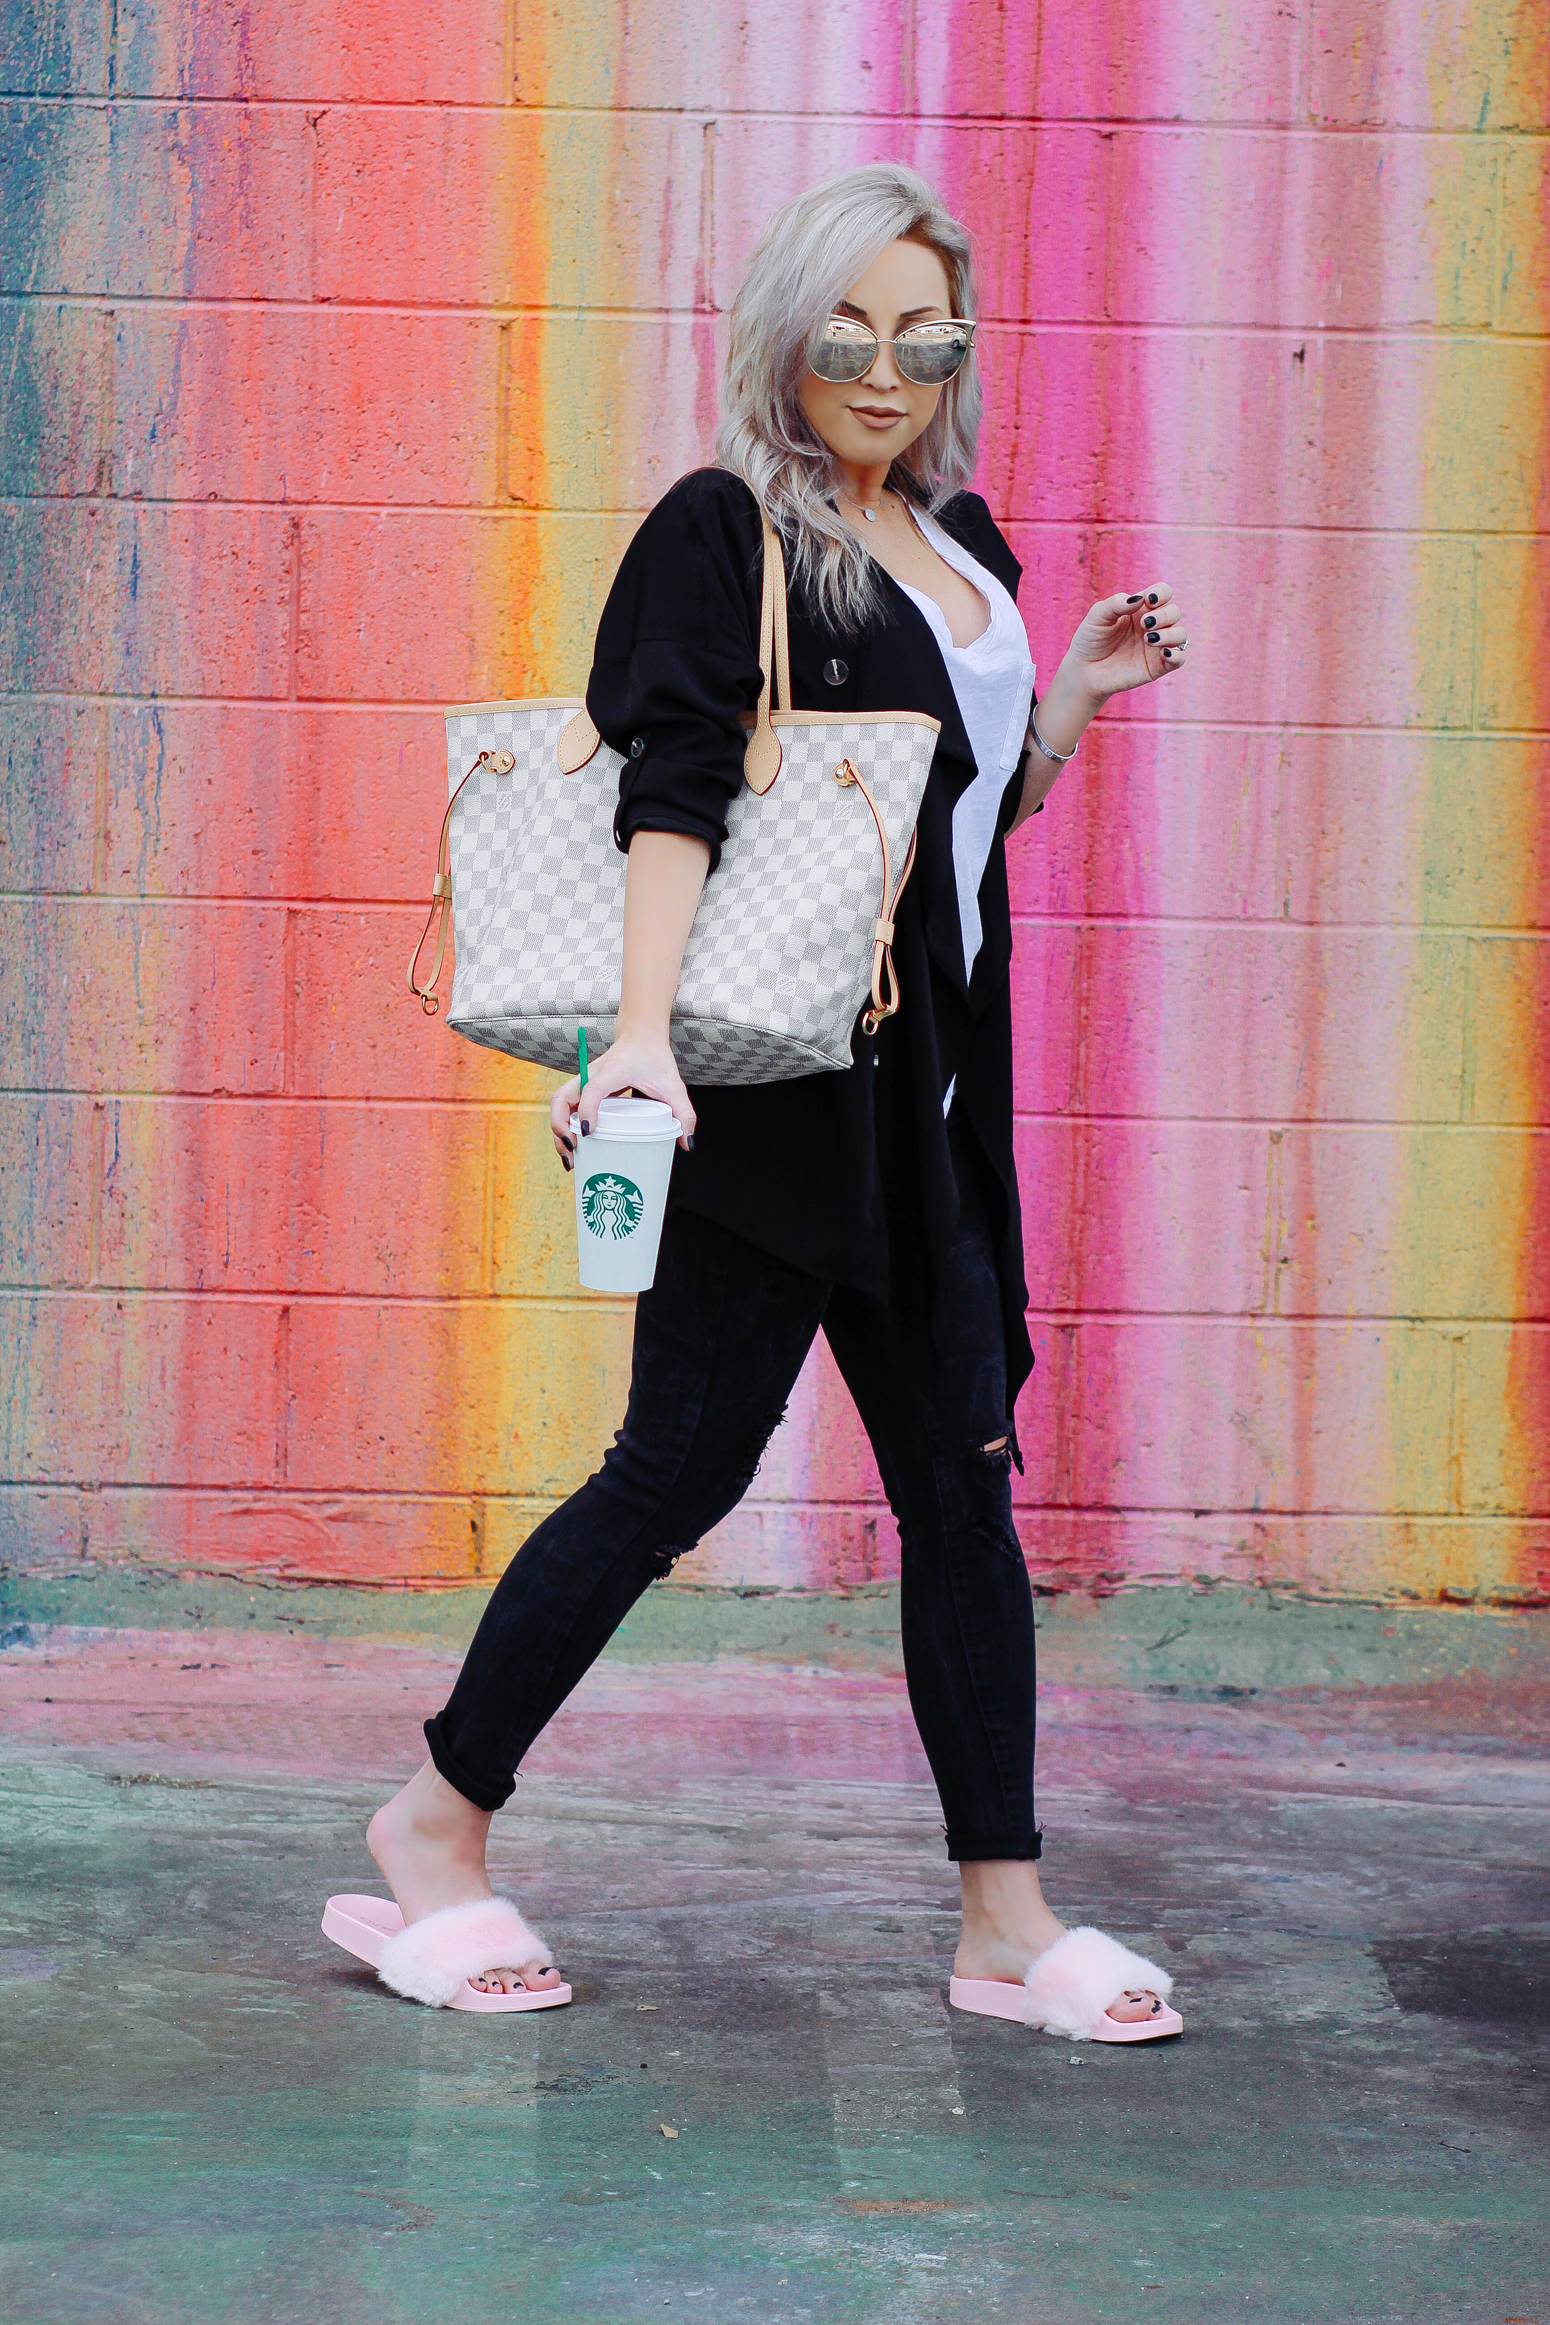 Blondie in the City | Checkered Louis Vuitton Neverfull Bag | Pink Fuzzy Slippers | Mirrored Sunglasses